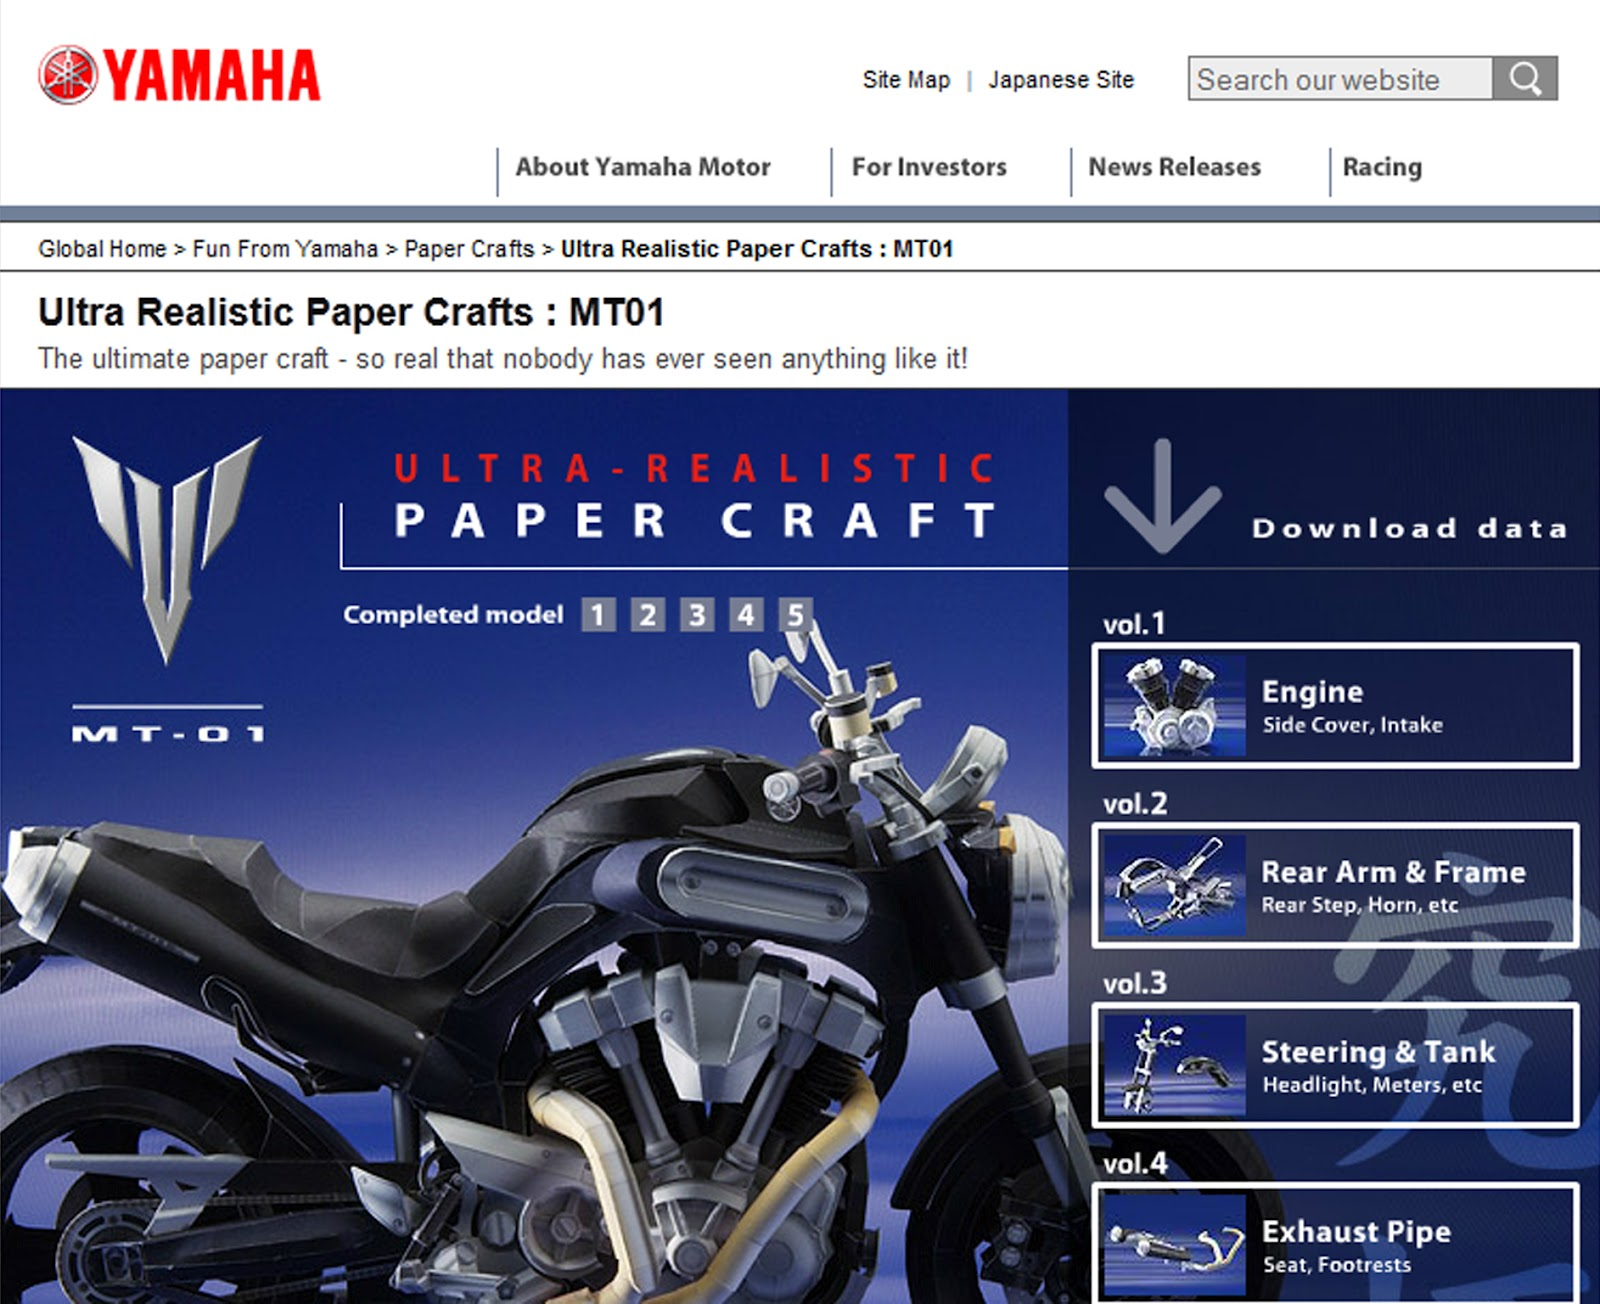 Scaled down yamaha has this webpage where you could download several paper model kits of selected motorcycles theyve produced for free all you need are some card jeuxipadfo Choice Image